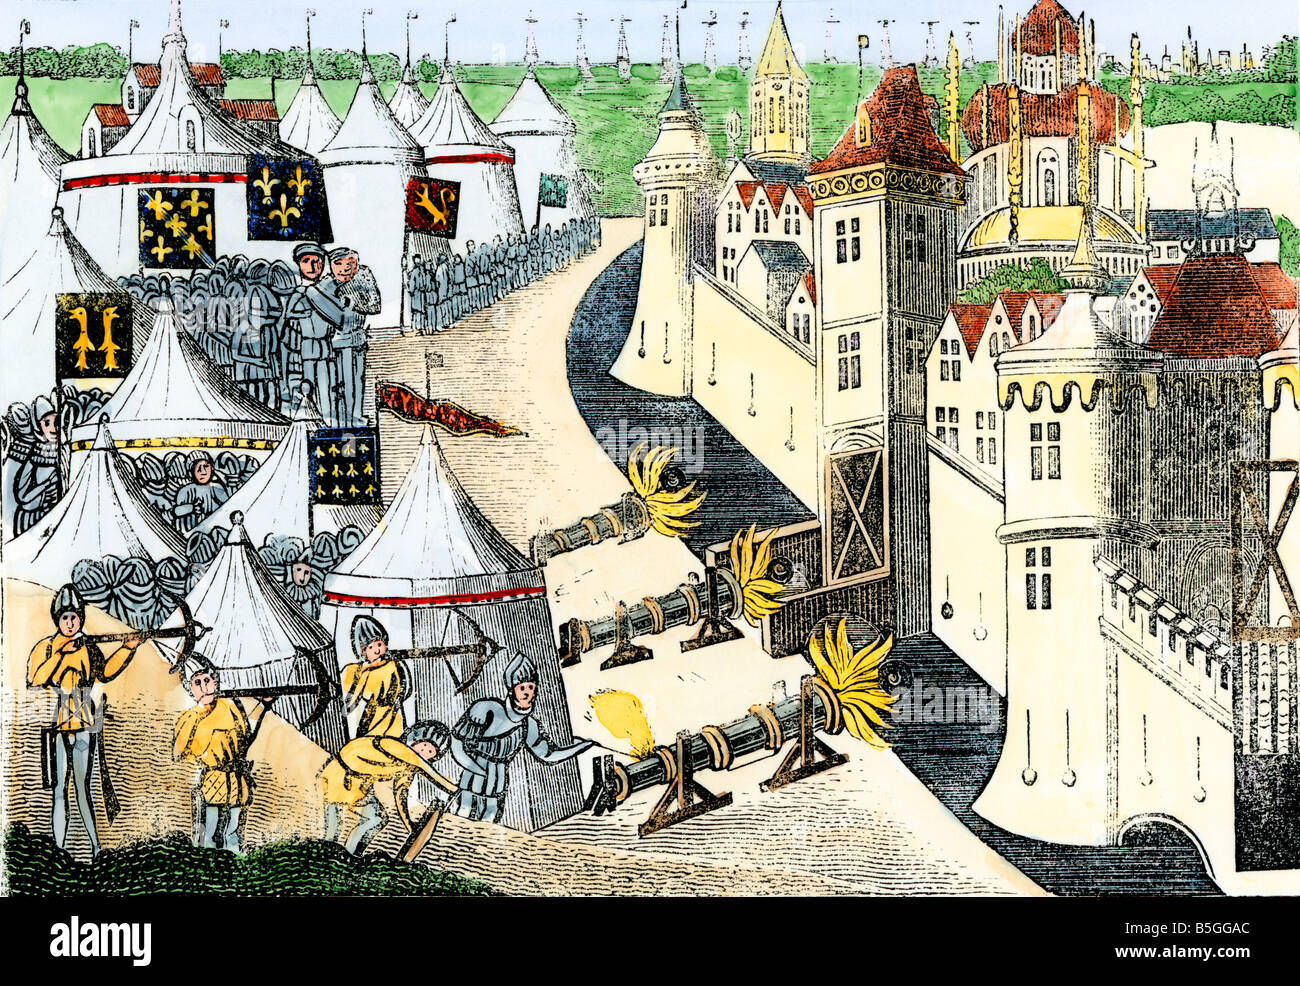 Siege of a town in France during the Hundred Years War. Hand-colored woodcut - Stock Image